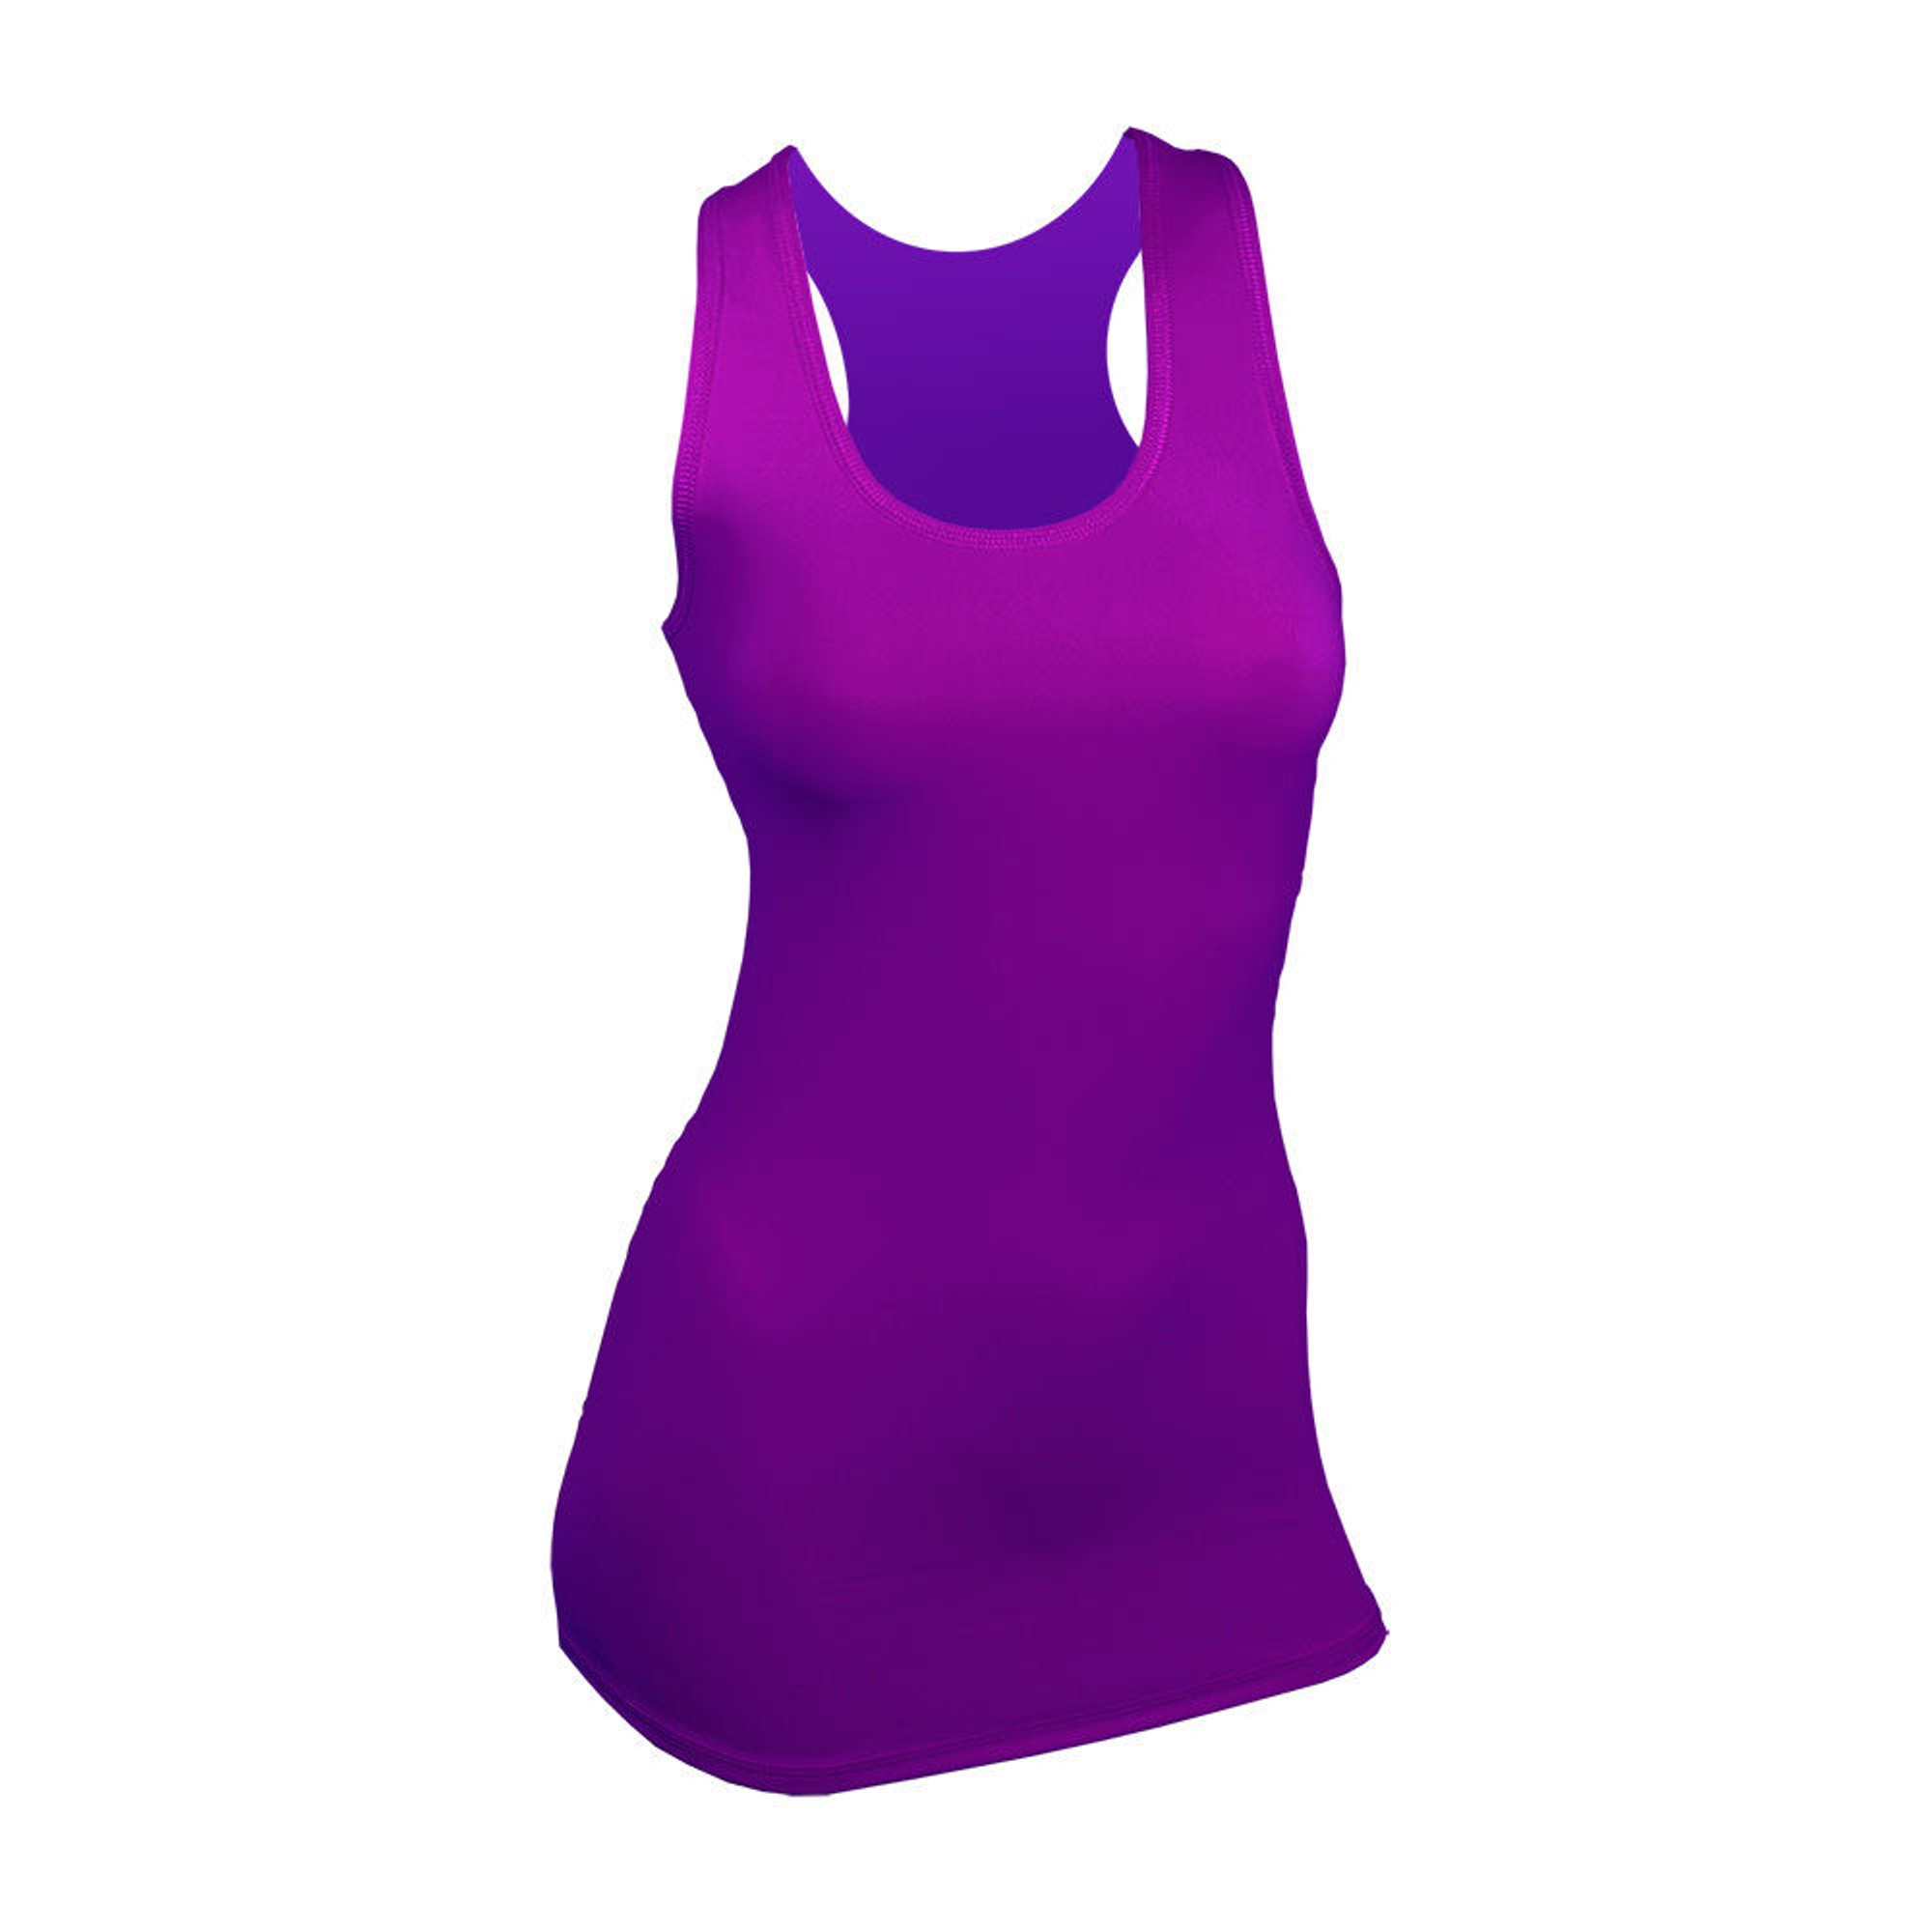 Women's Tank Top Rashguard